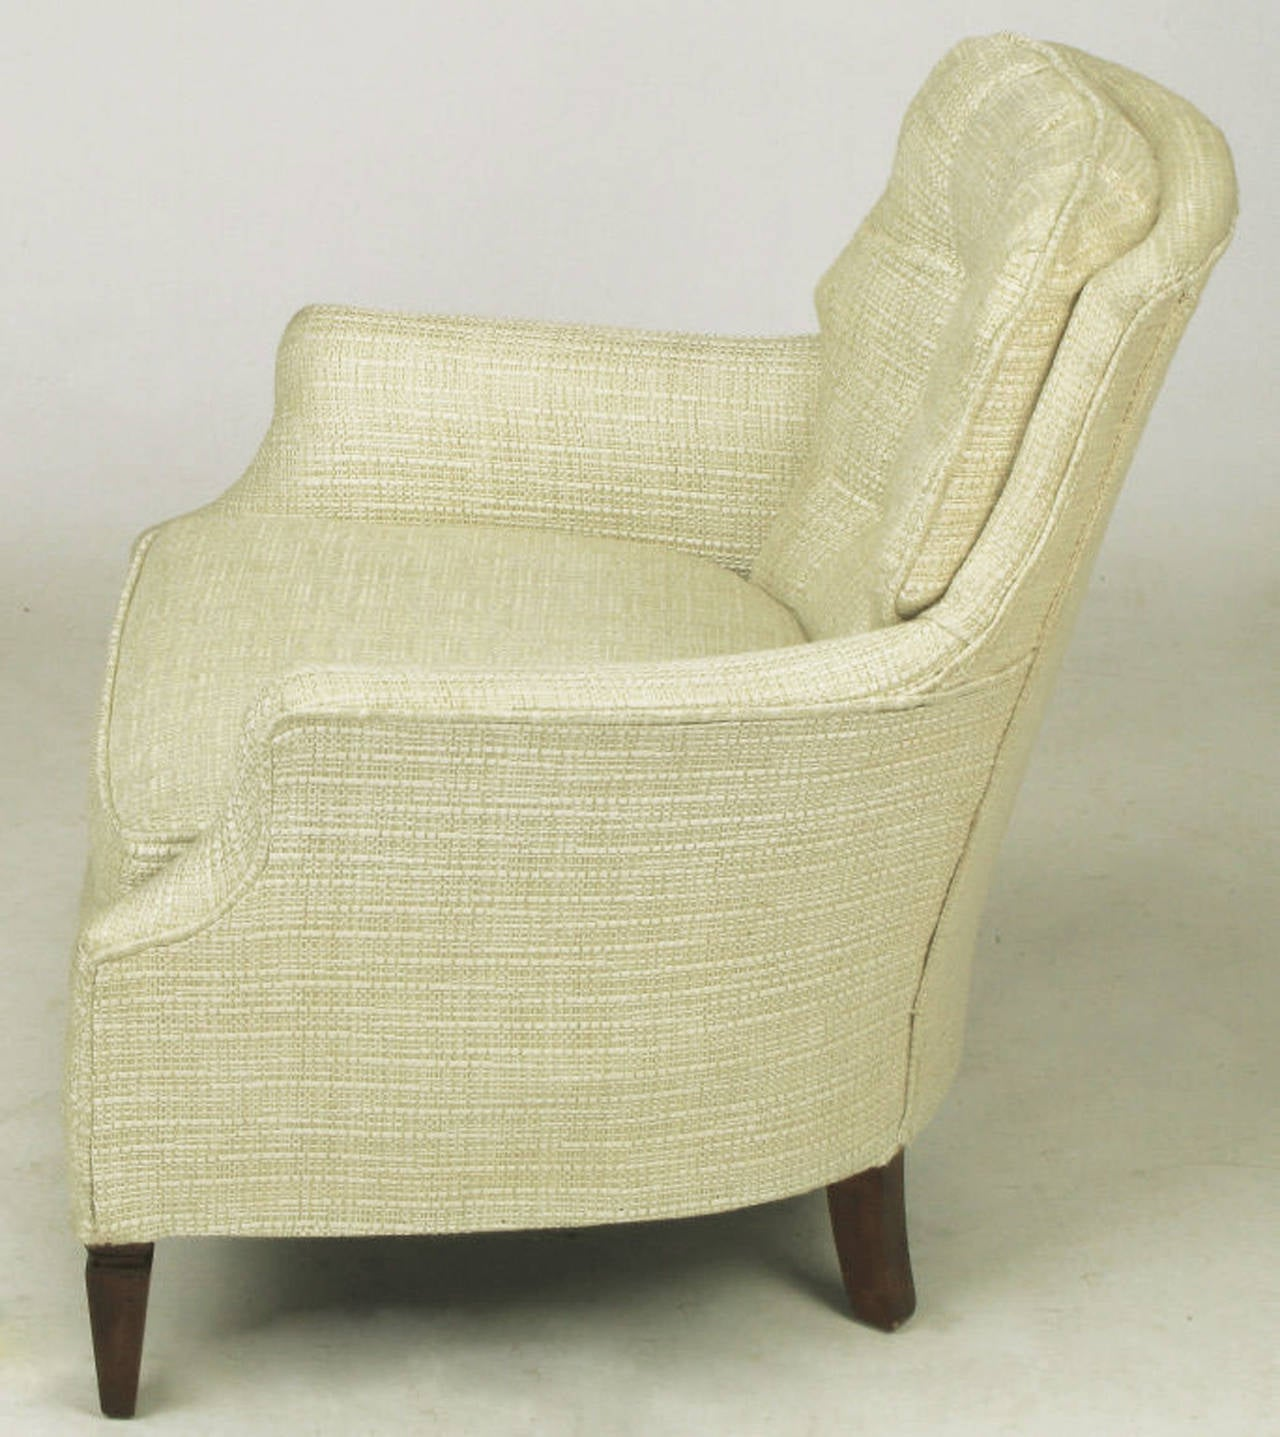 tufted chair and ottoman office price in pakistan button creamy linen lounge for